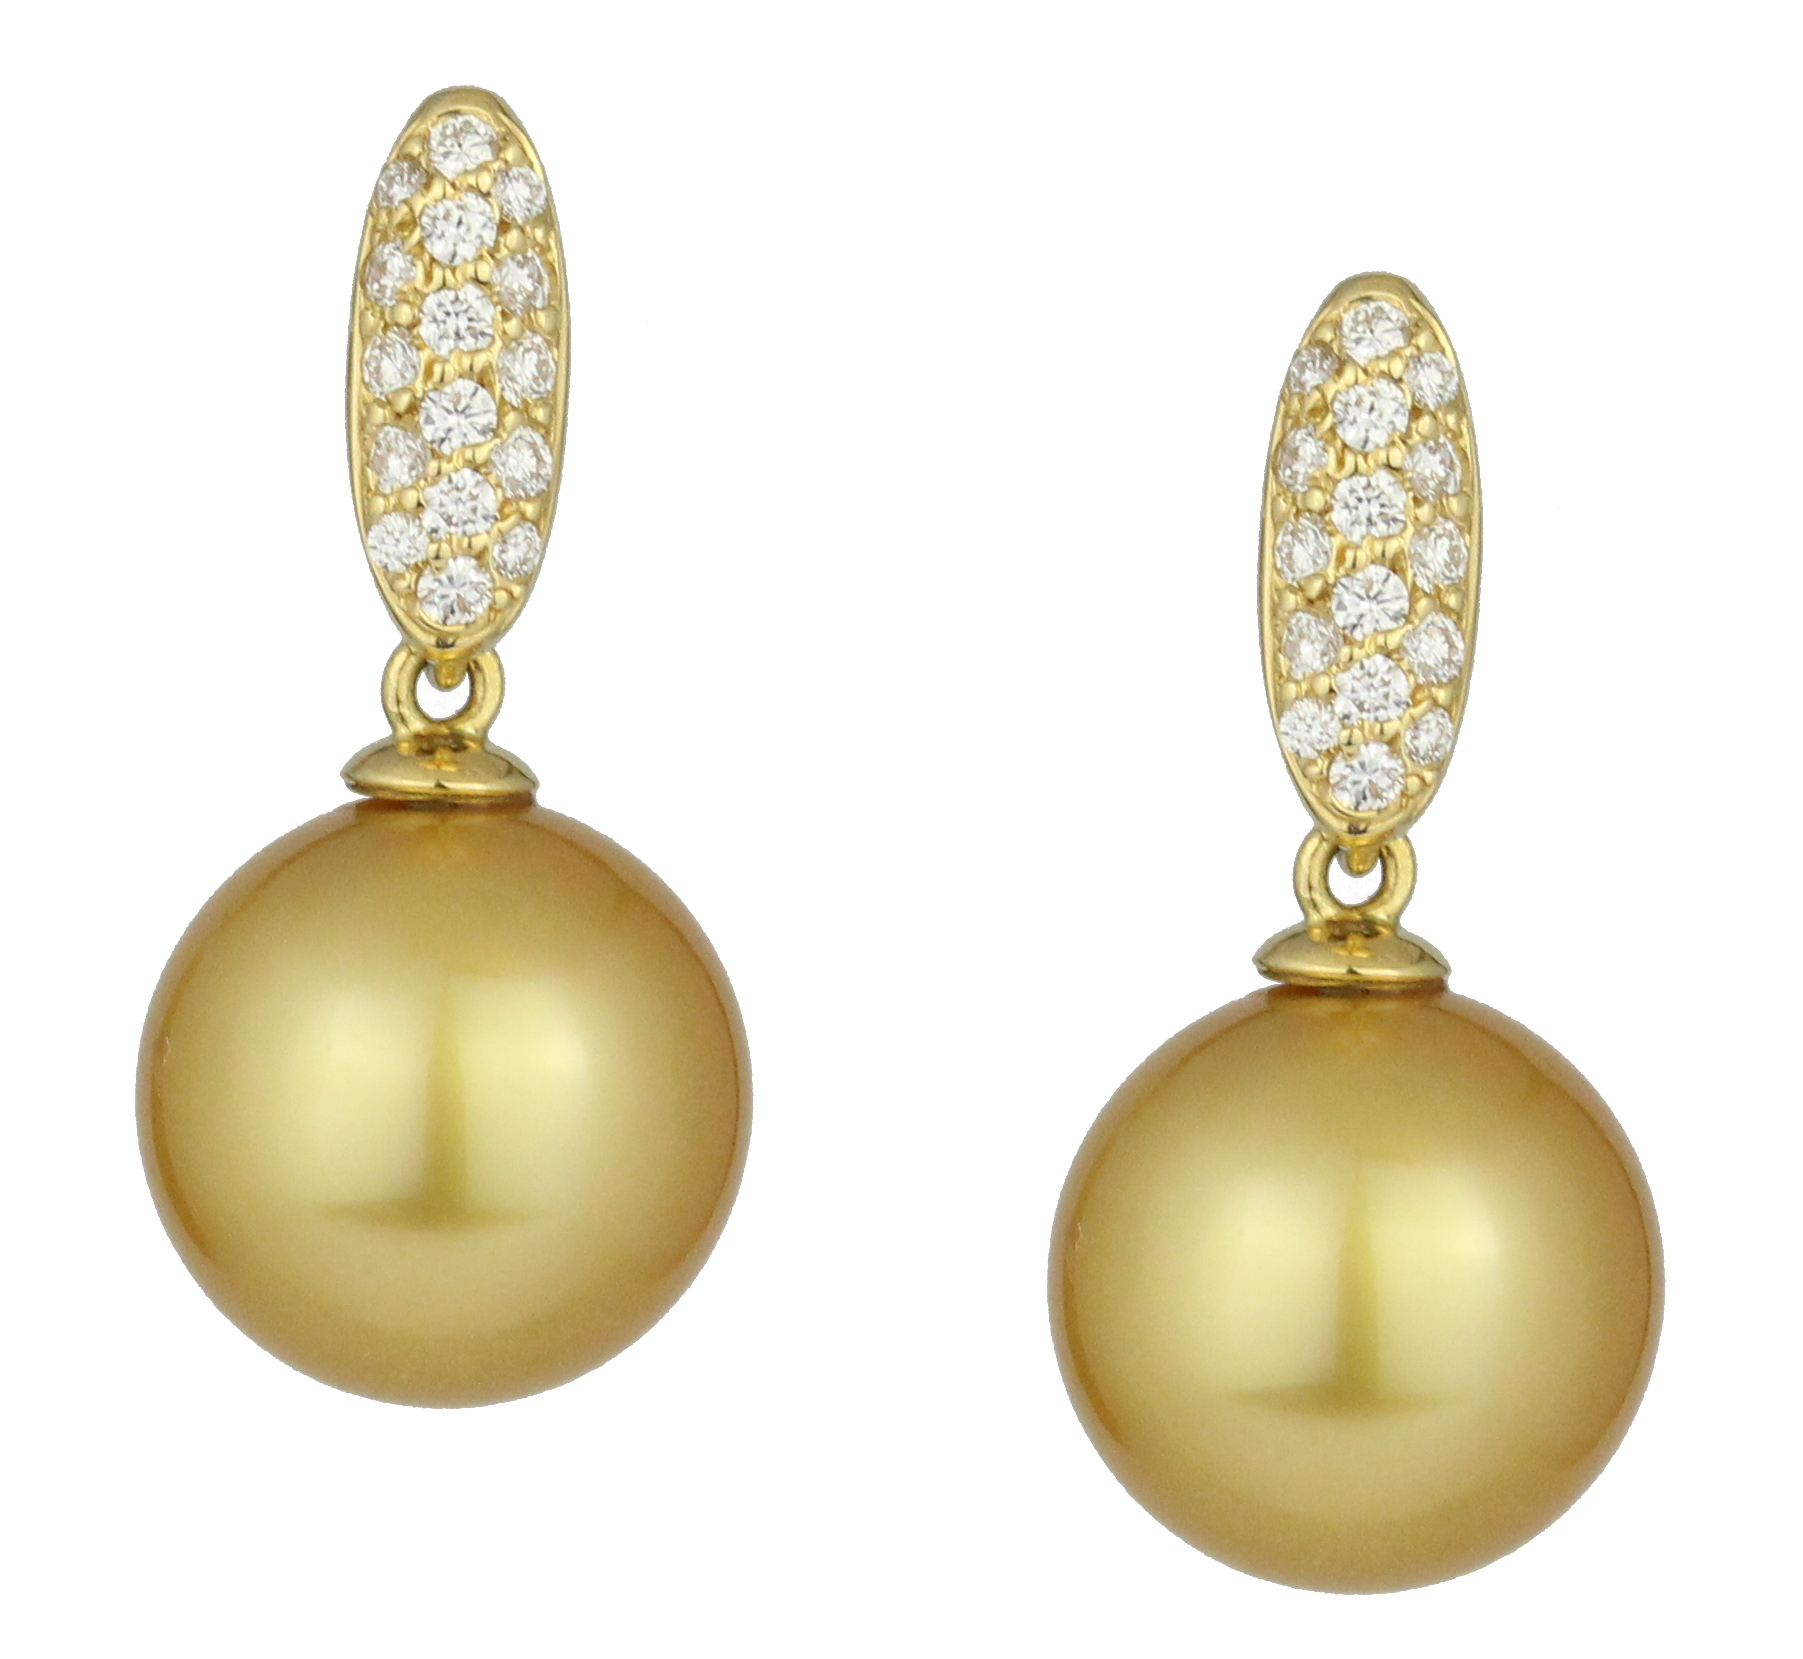 Round golden south sea pearl earrings with diamonds in yellow gold.